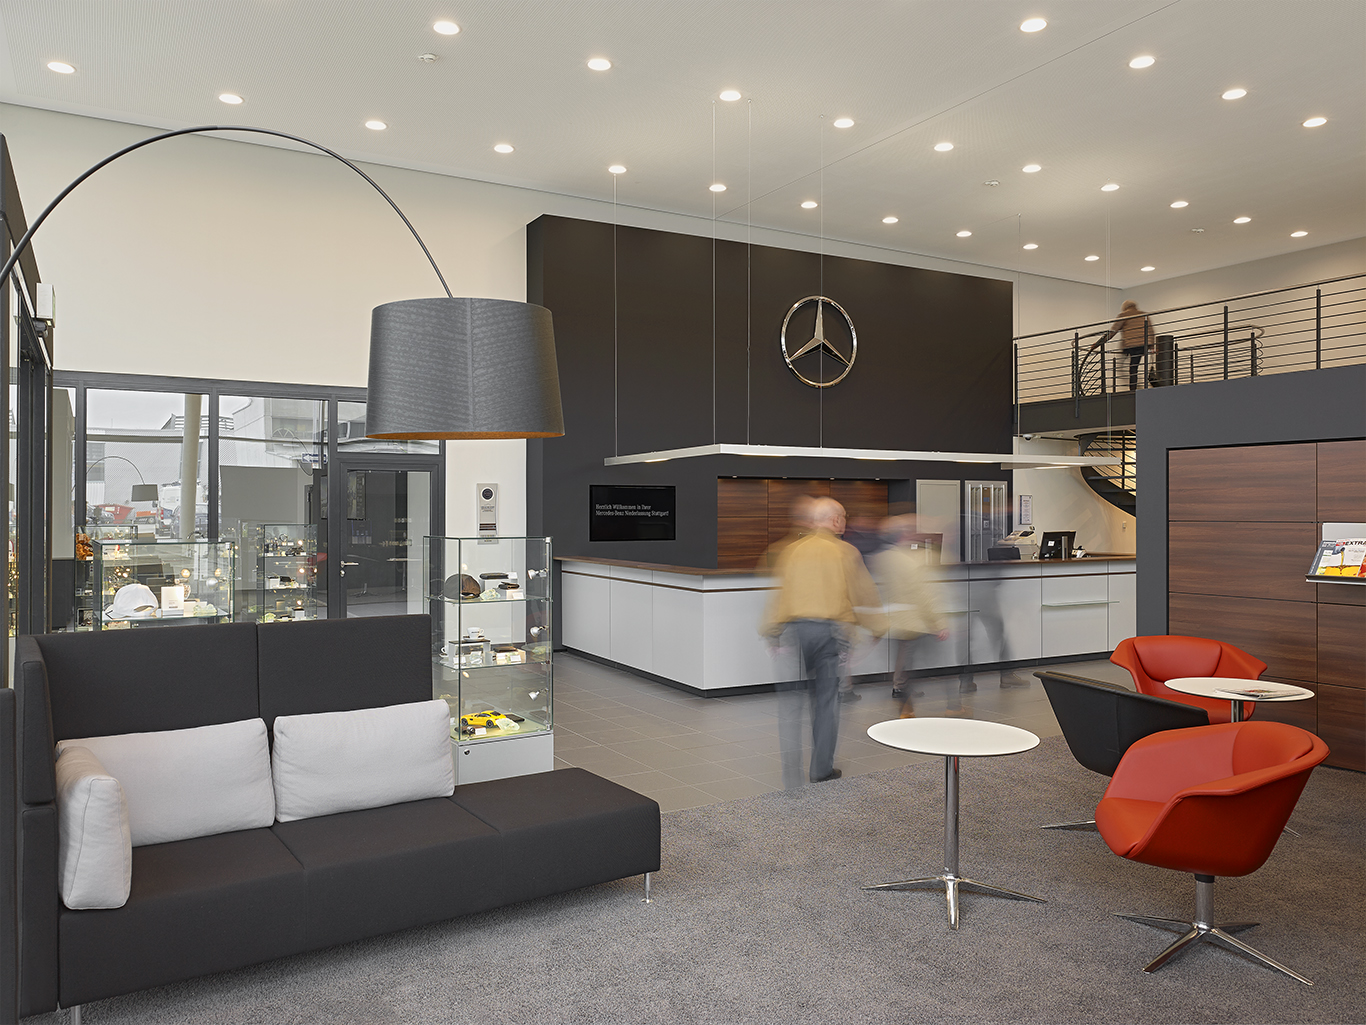 mercedes benz niederlassung frankfurt. Black Bedroom Furniture Sets. Home Design Ideas